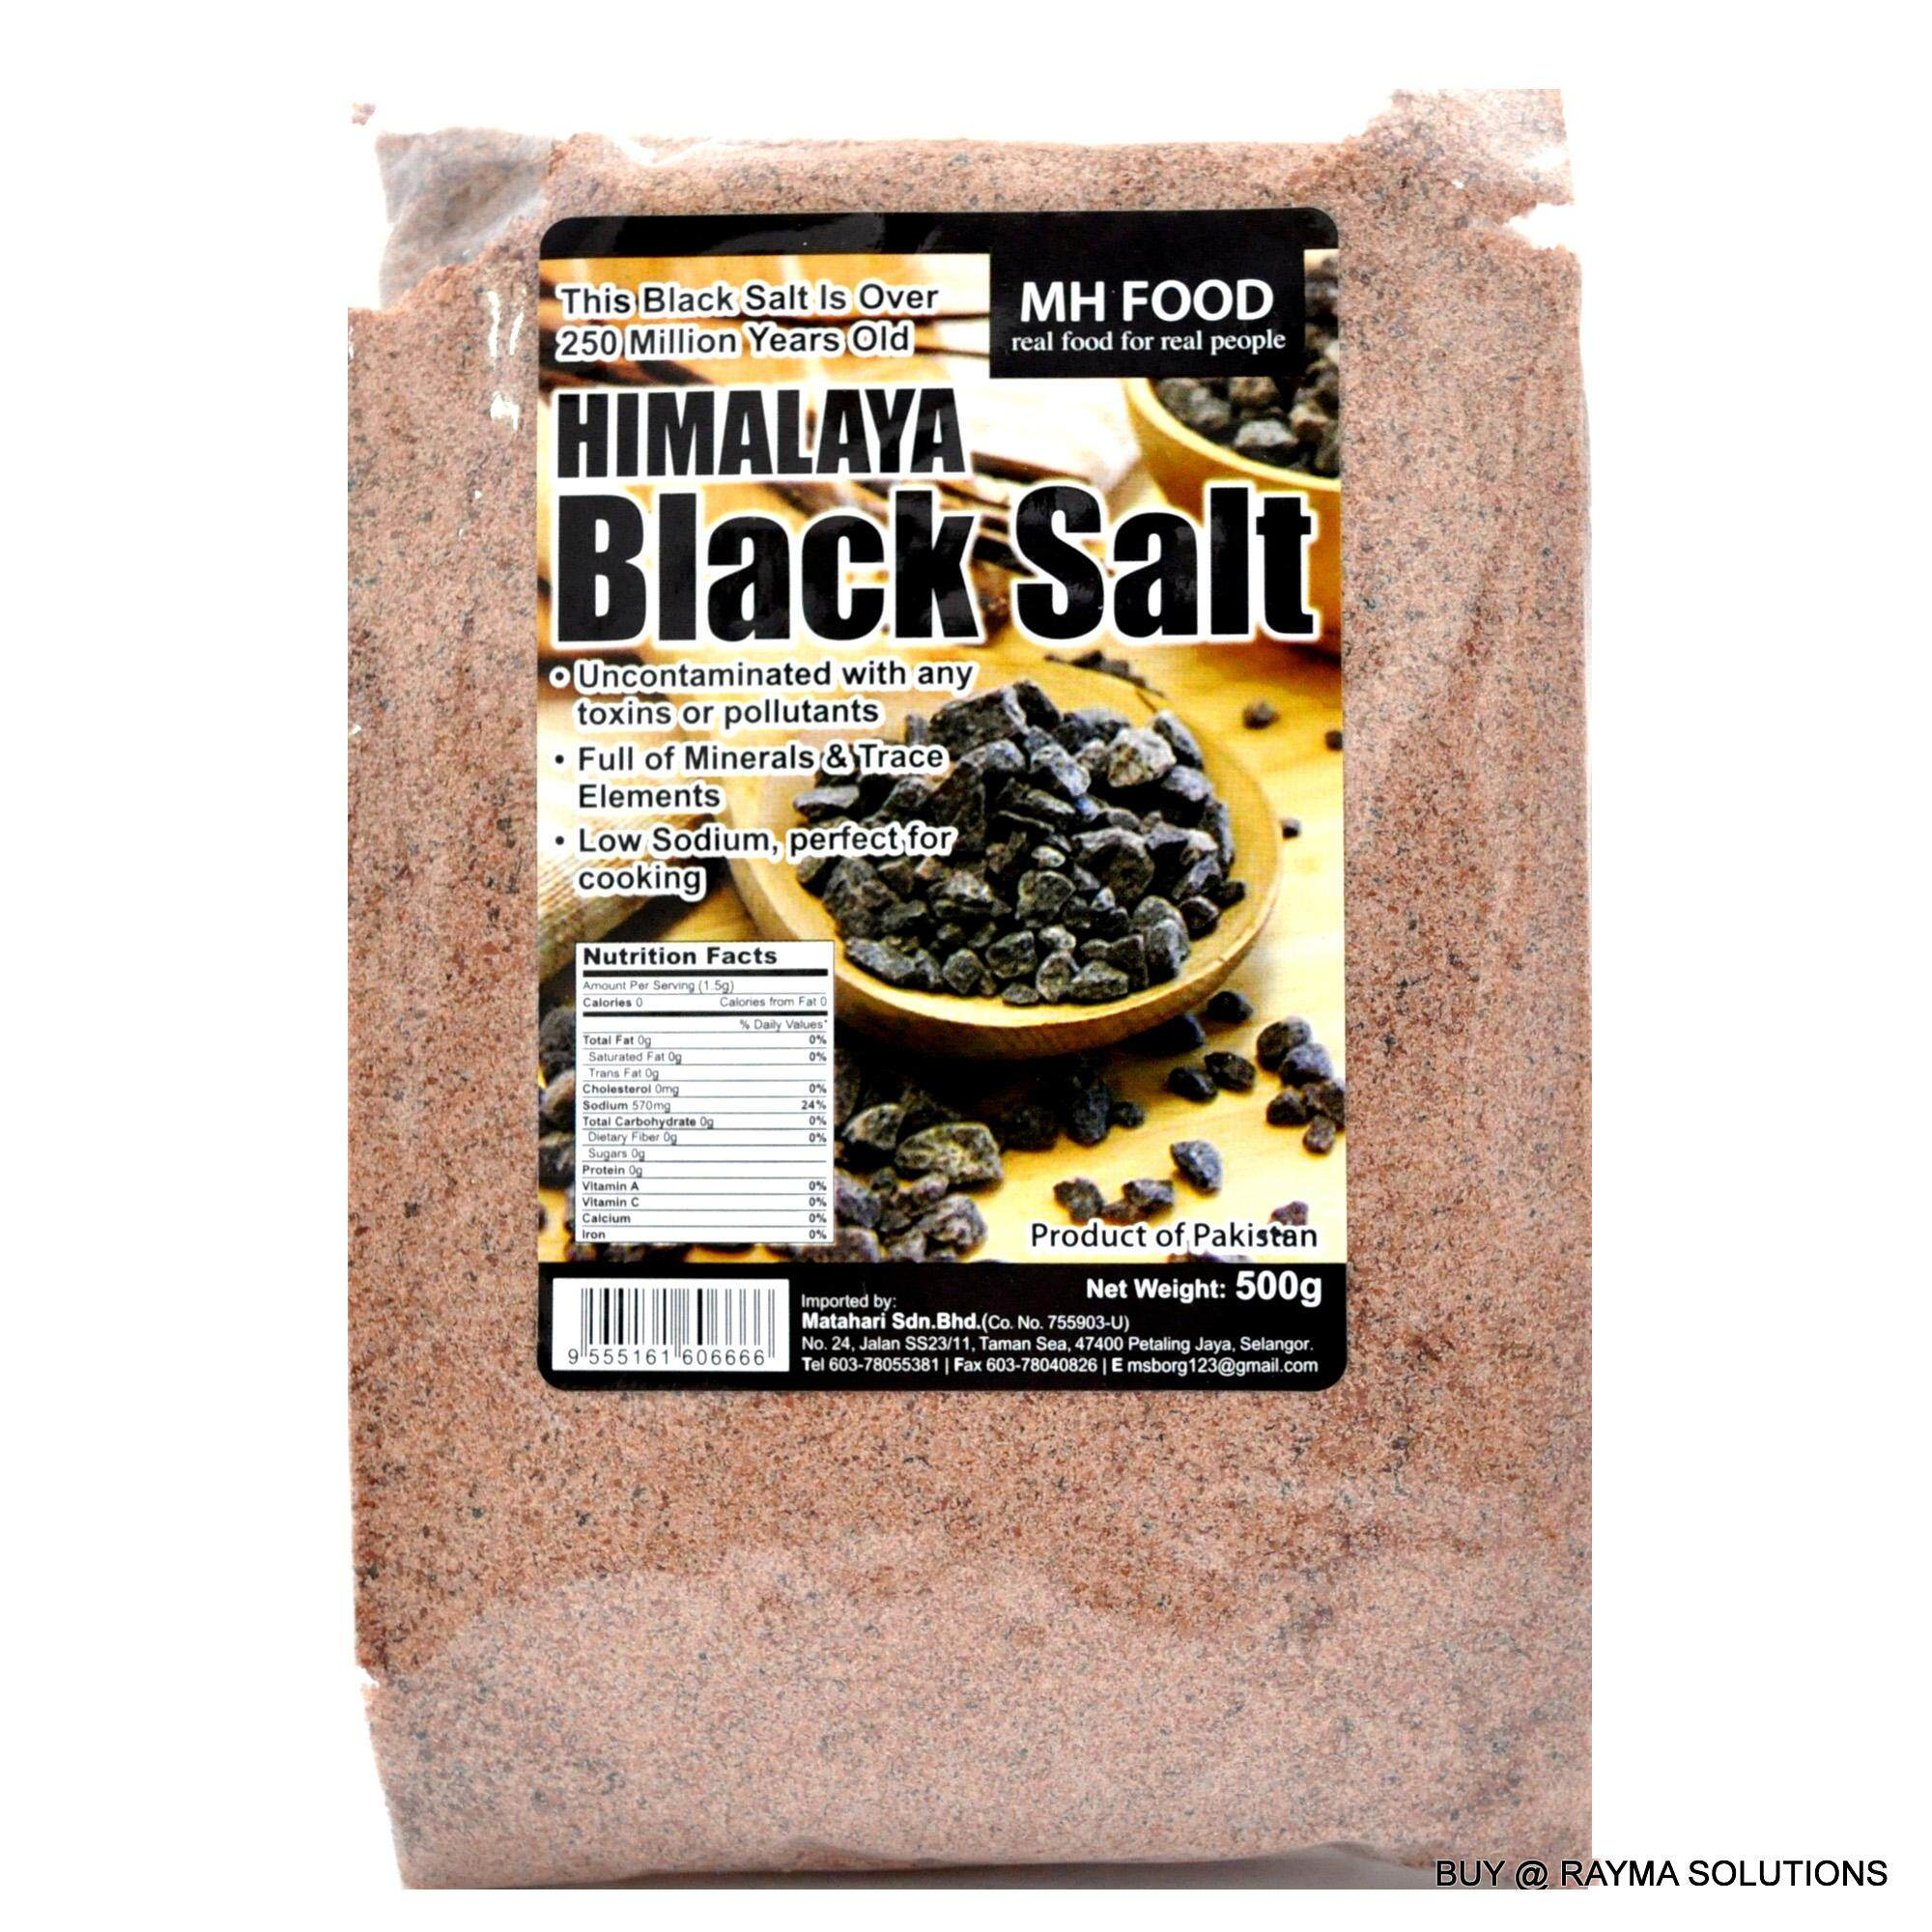 MH FOOD Premium Himalaya Black Salt - Fine 500g